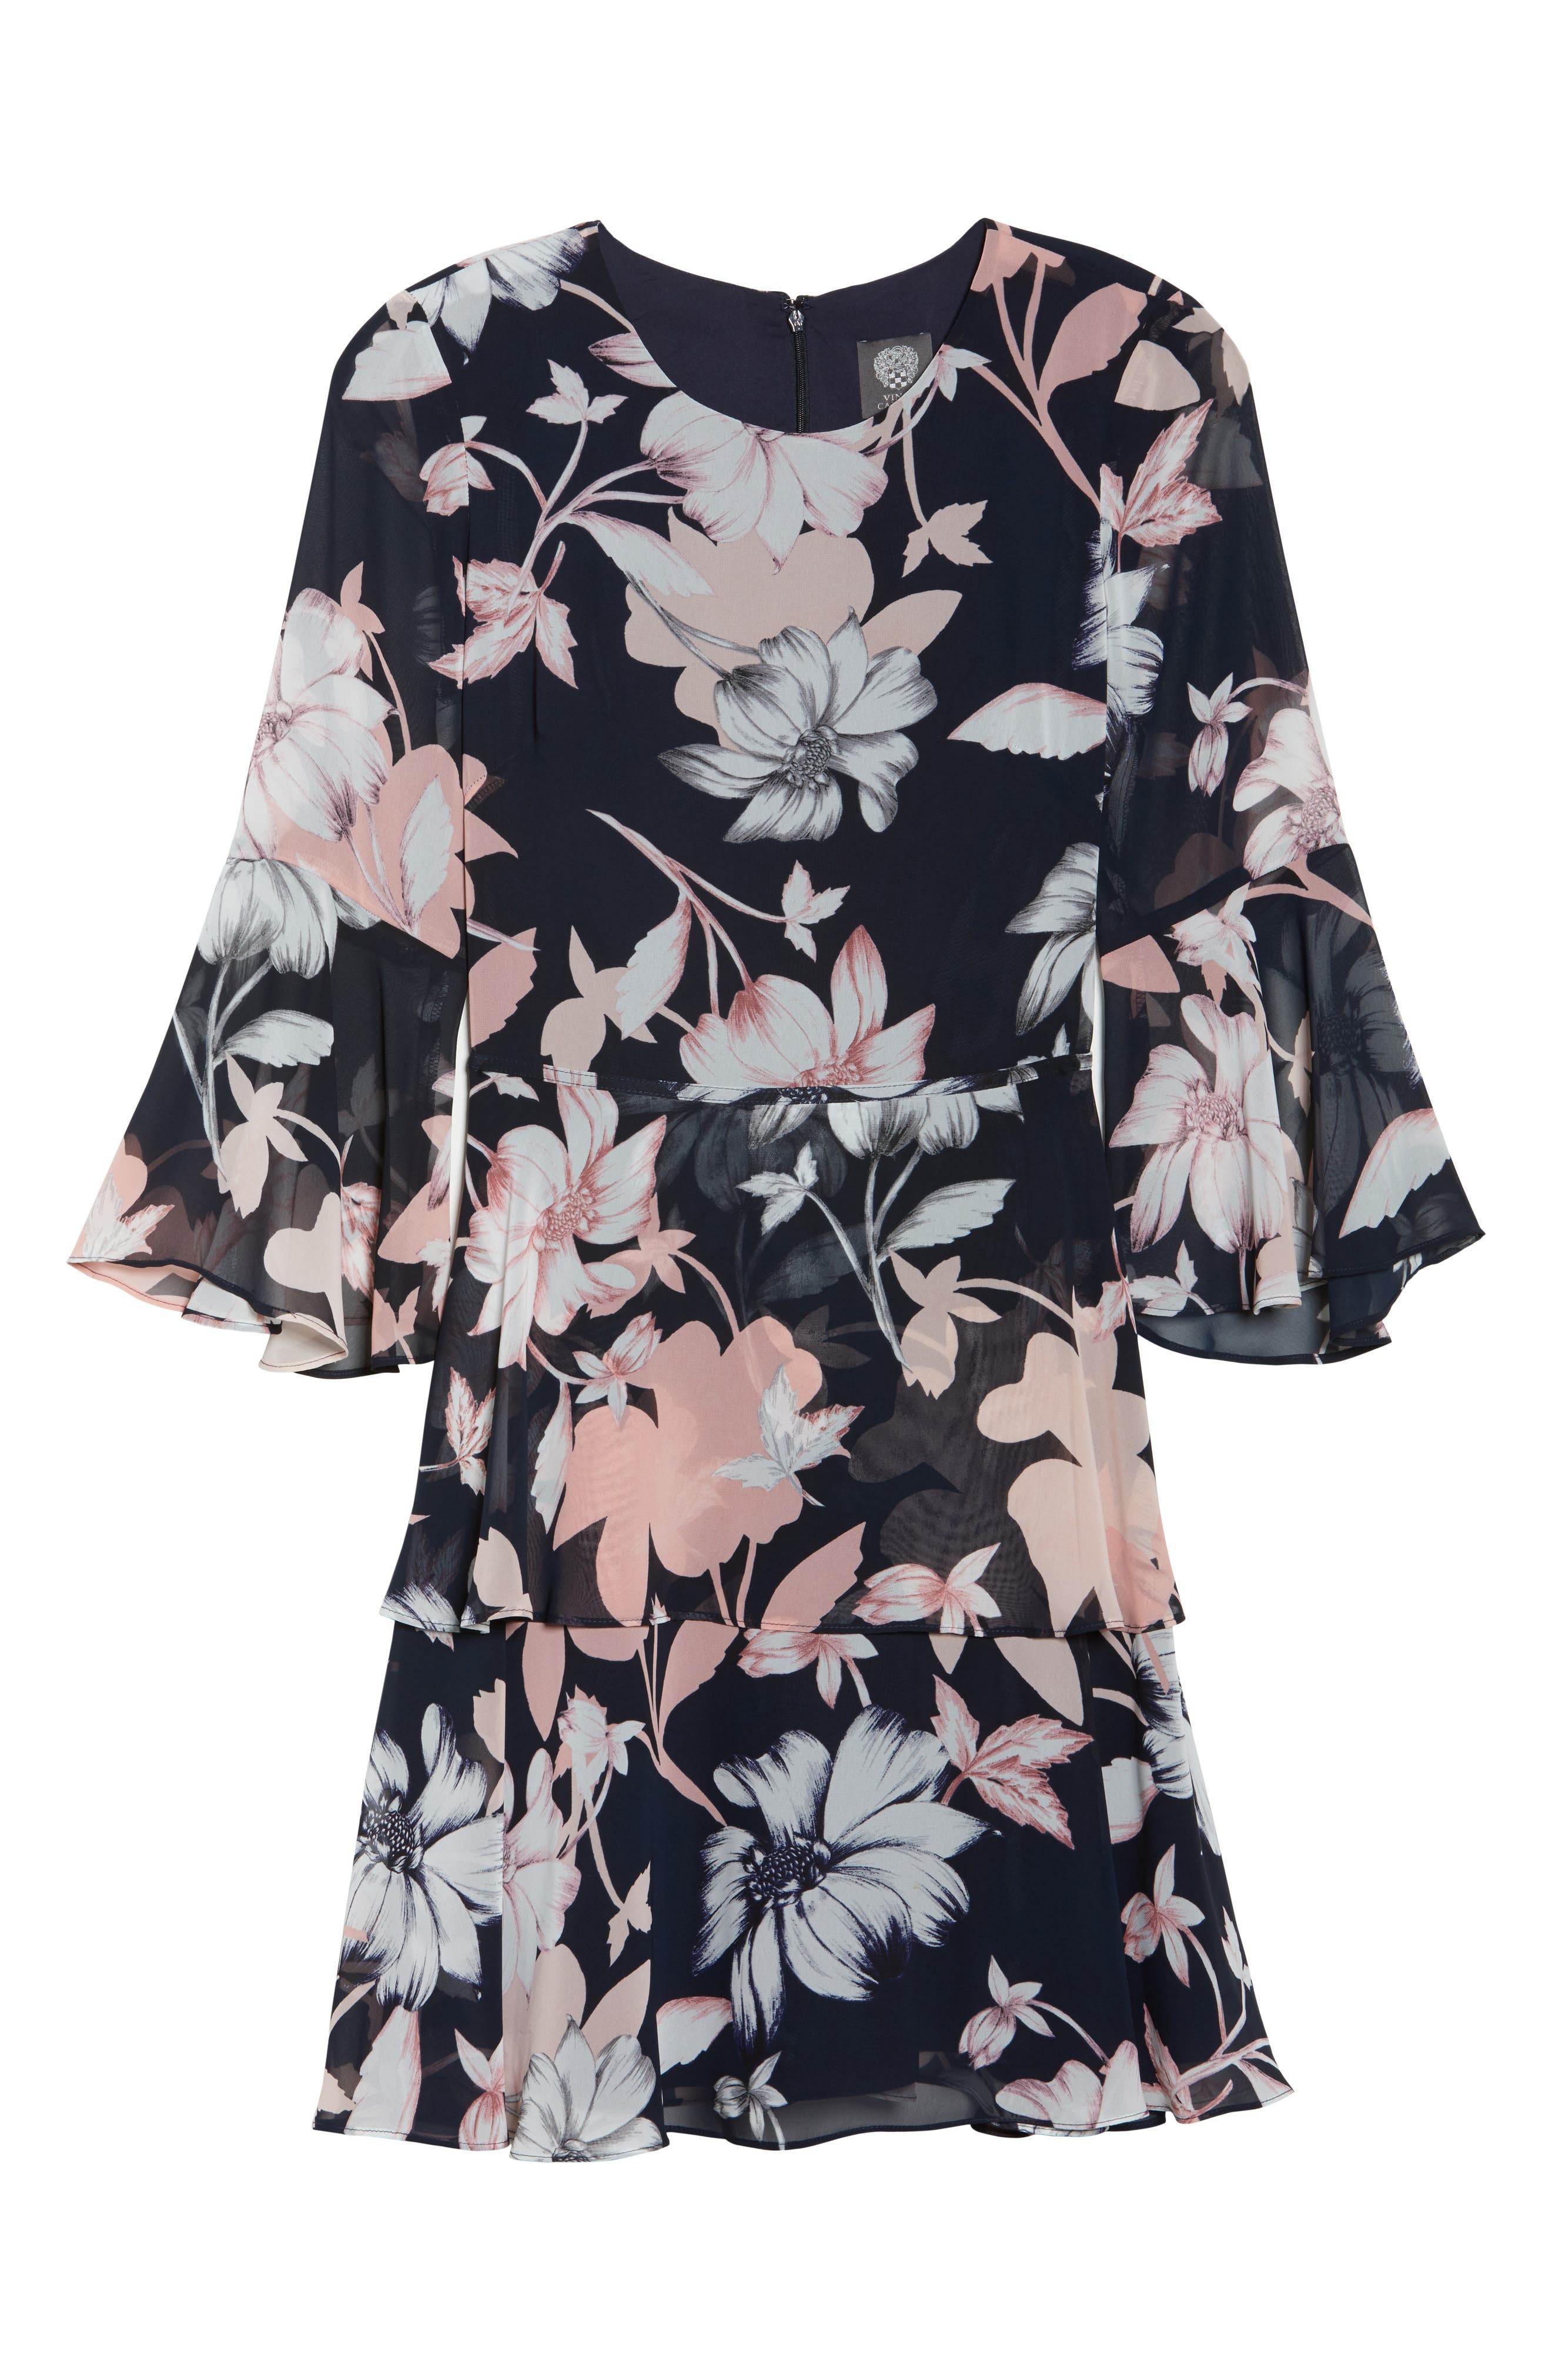 Floral Print Tiered Chiffon Dress,                             Alternate thumbnail 6, color,                             Navy Multi